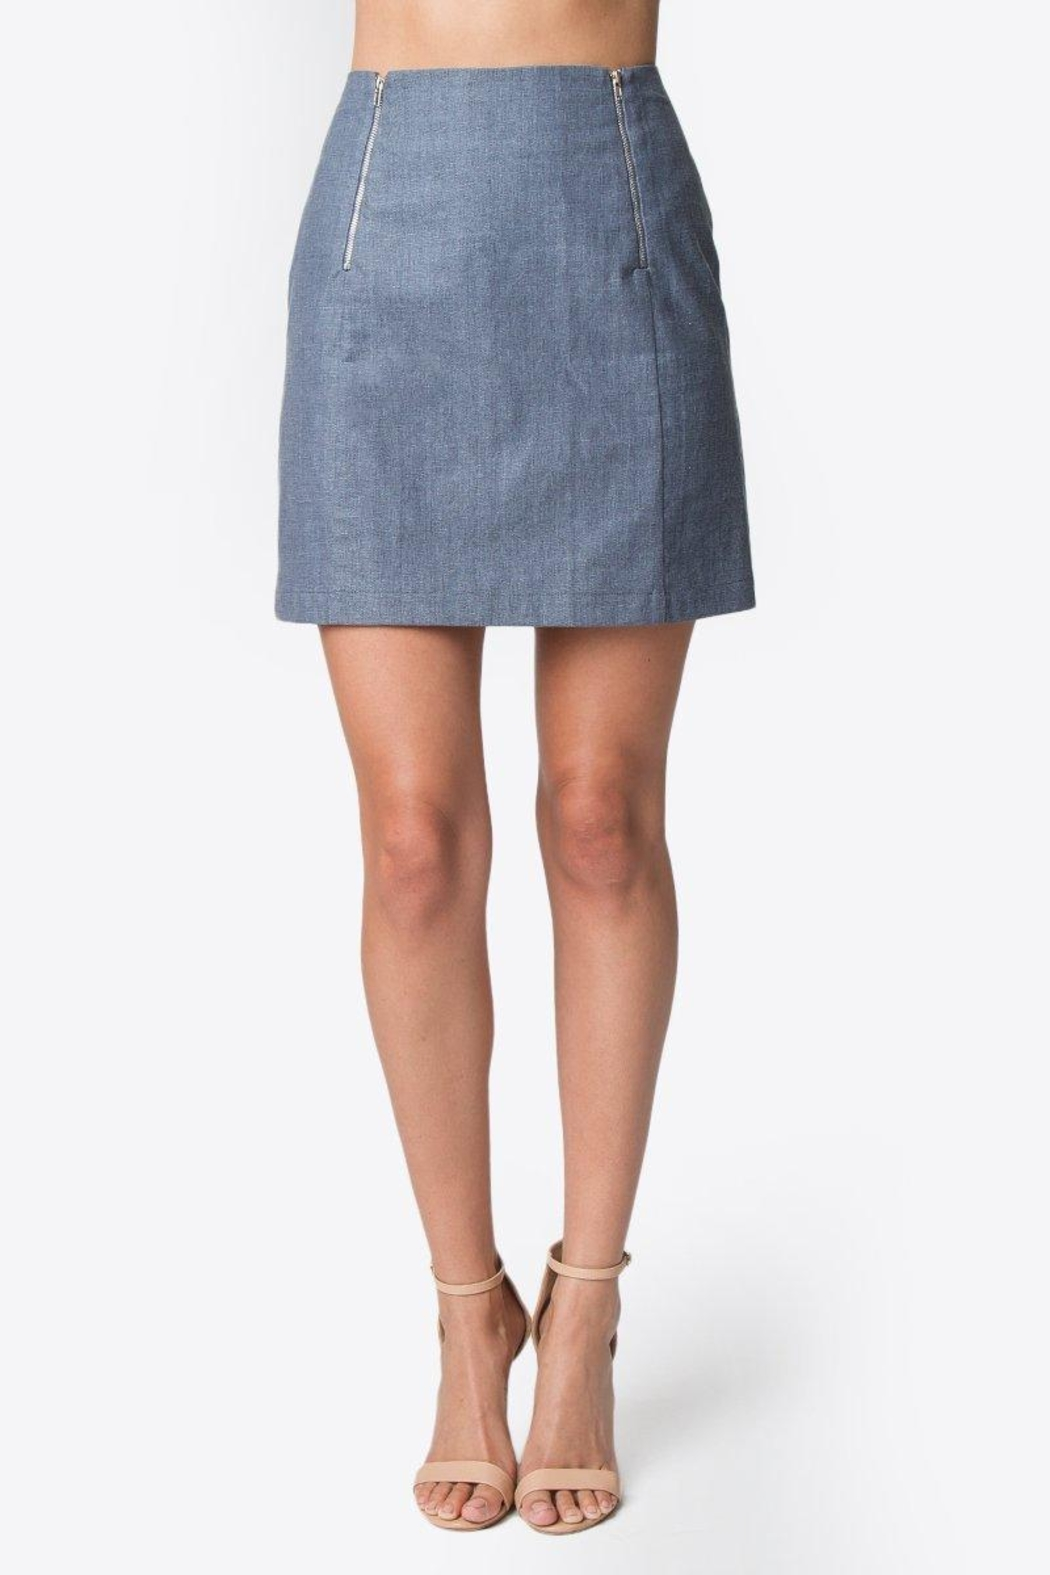 Sugar Lips Linen Mini Skirt - Front Full Image